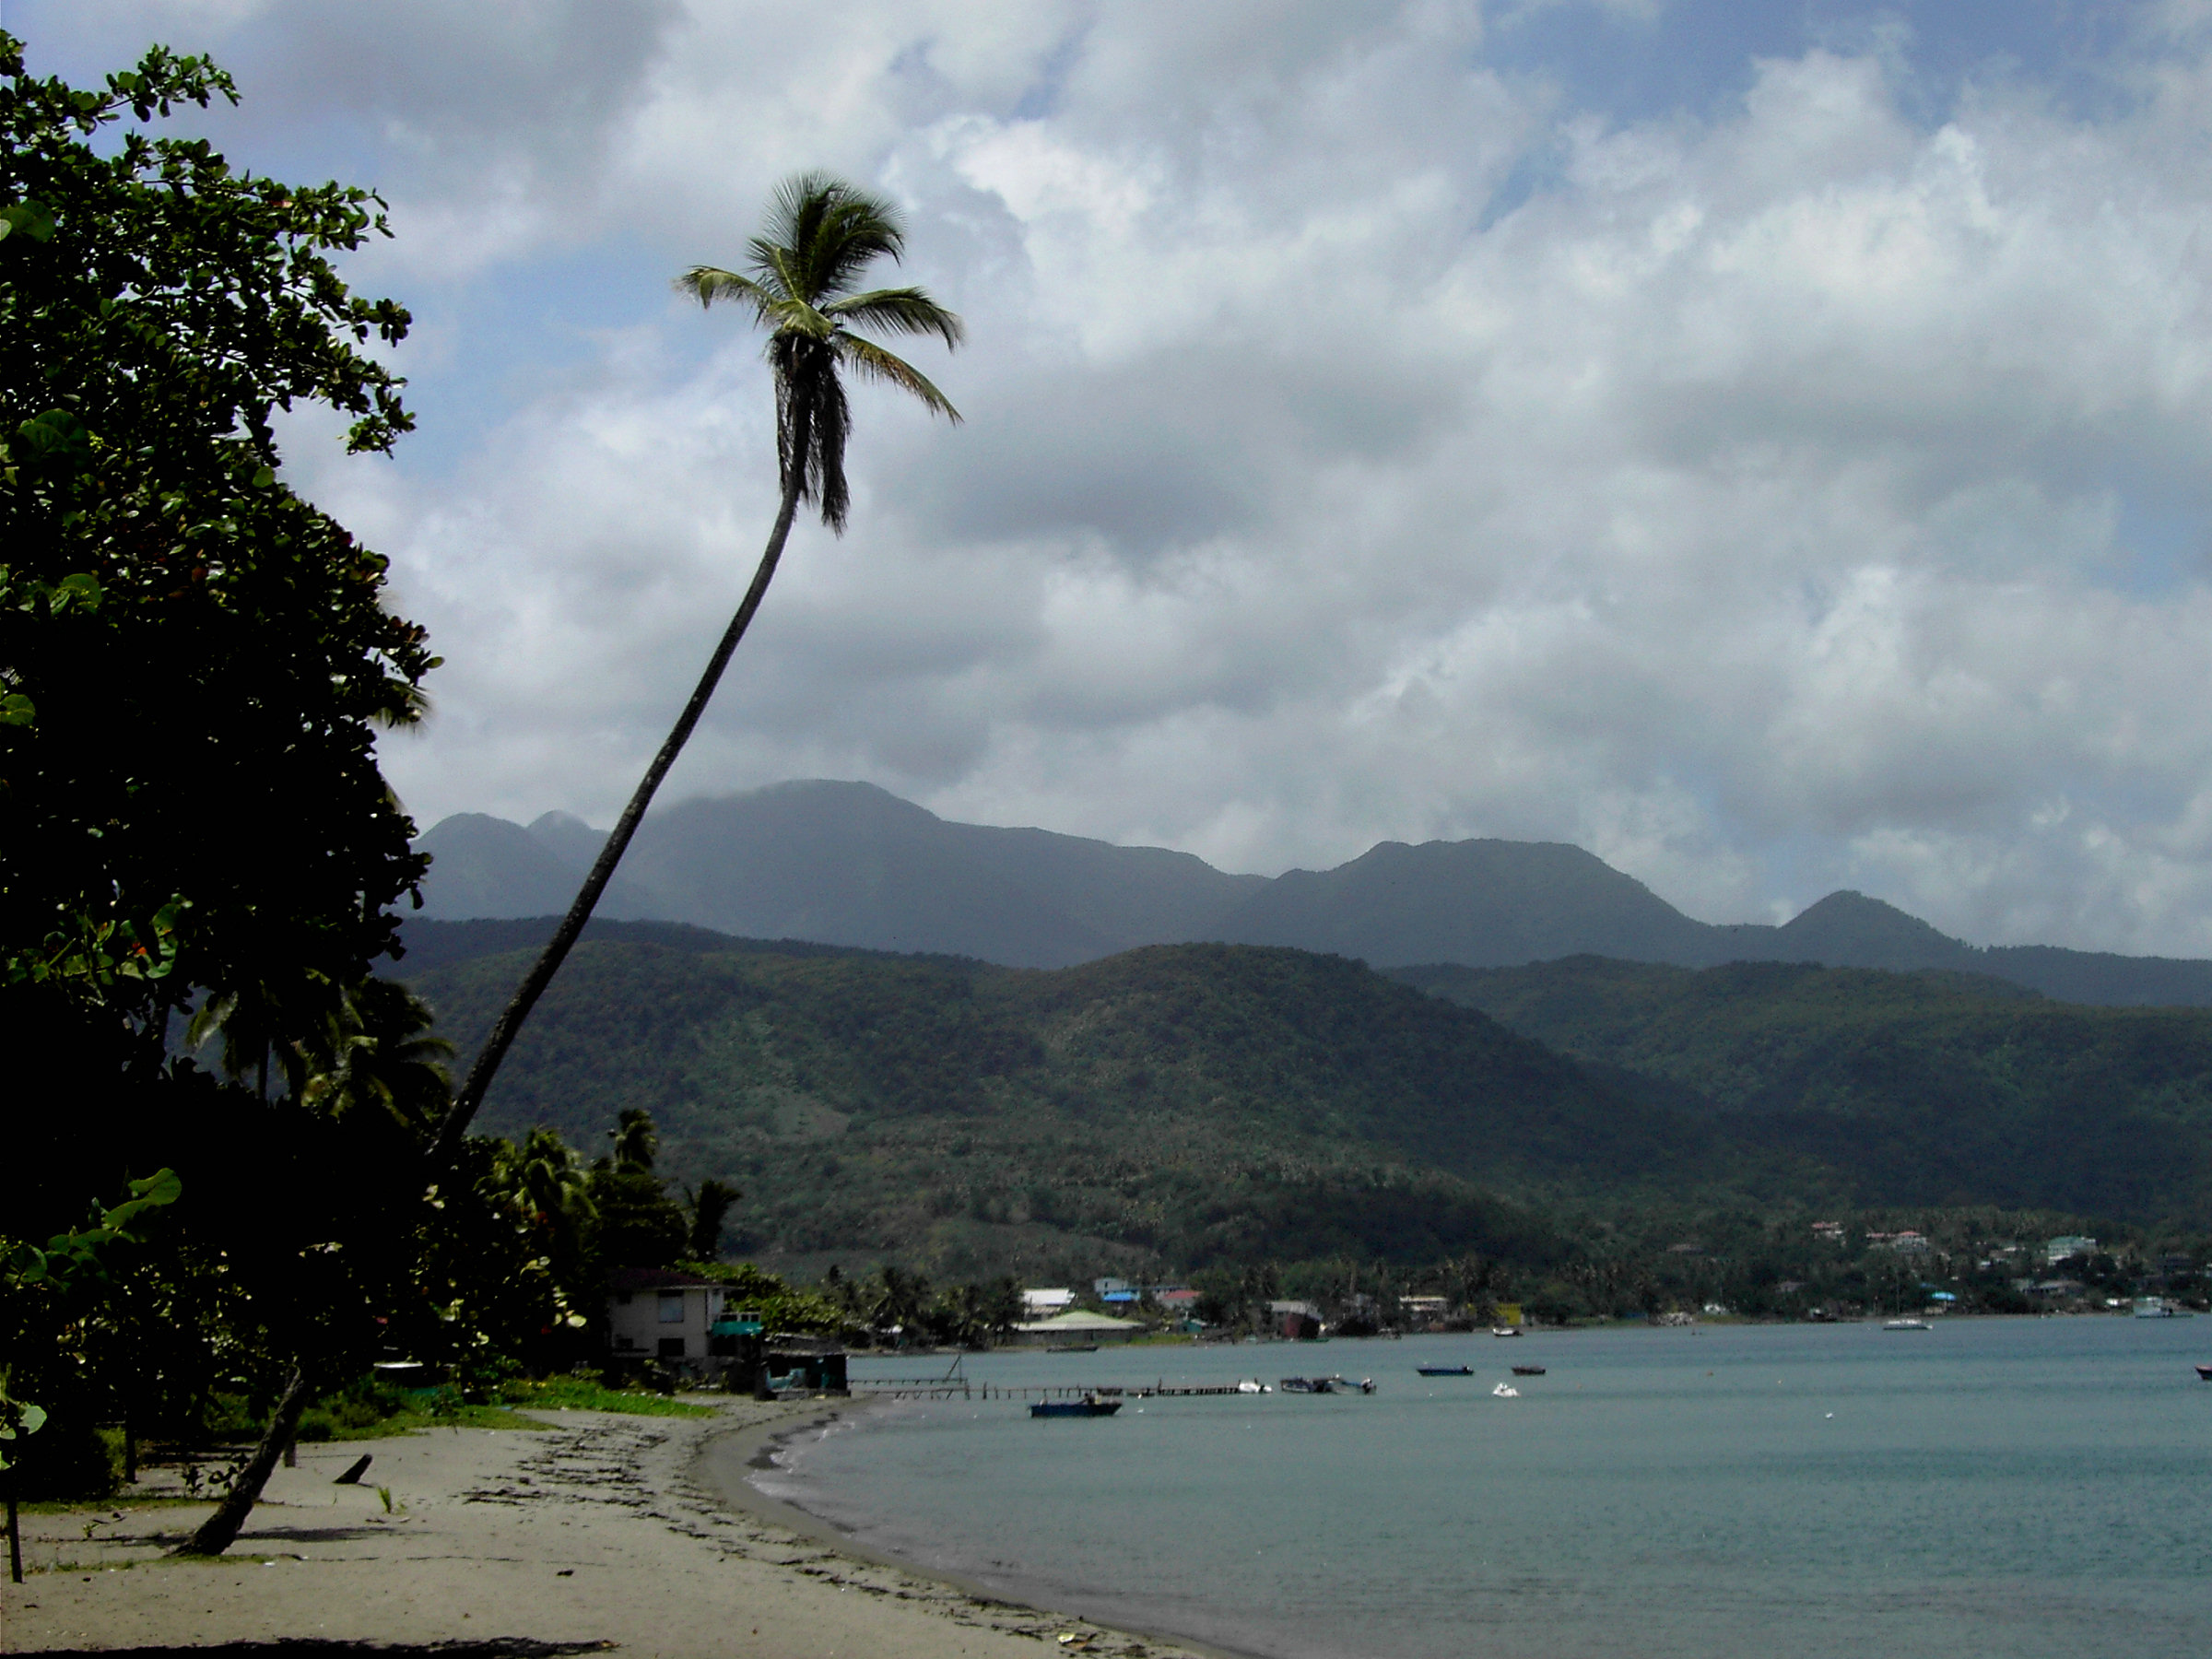 Dominica – Travel guide at Wikivoyage